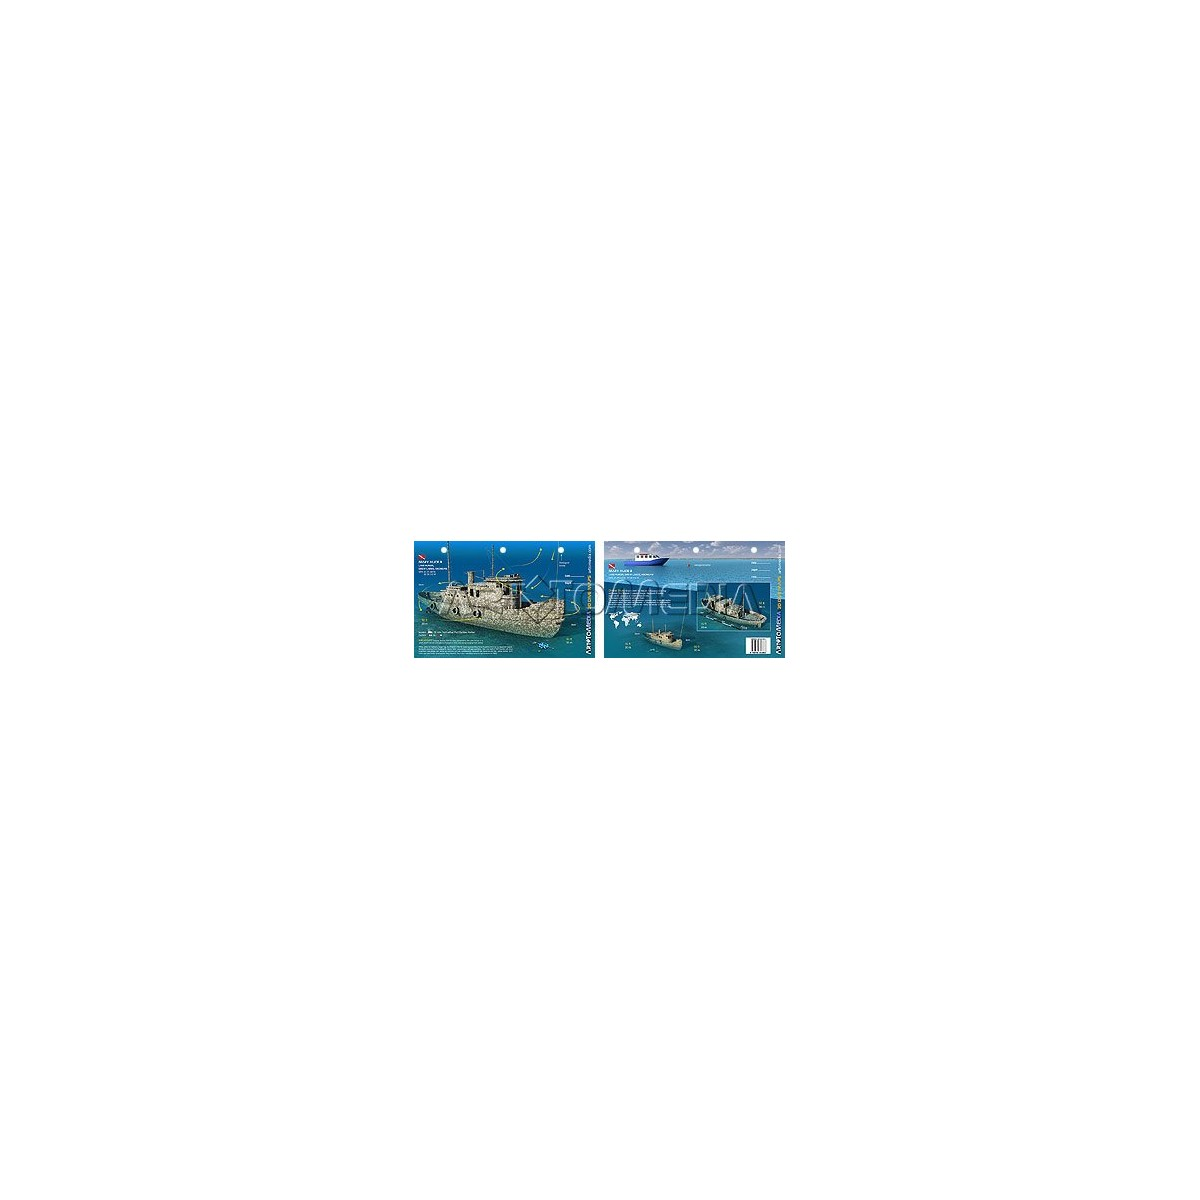 Mary Alice B in Lake Huron (8.5 x 5.5 Inches) (21.6 x 15cm) - New Art to Media Underwater Waterproof 3D Dive Site Map